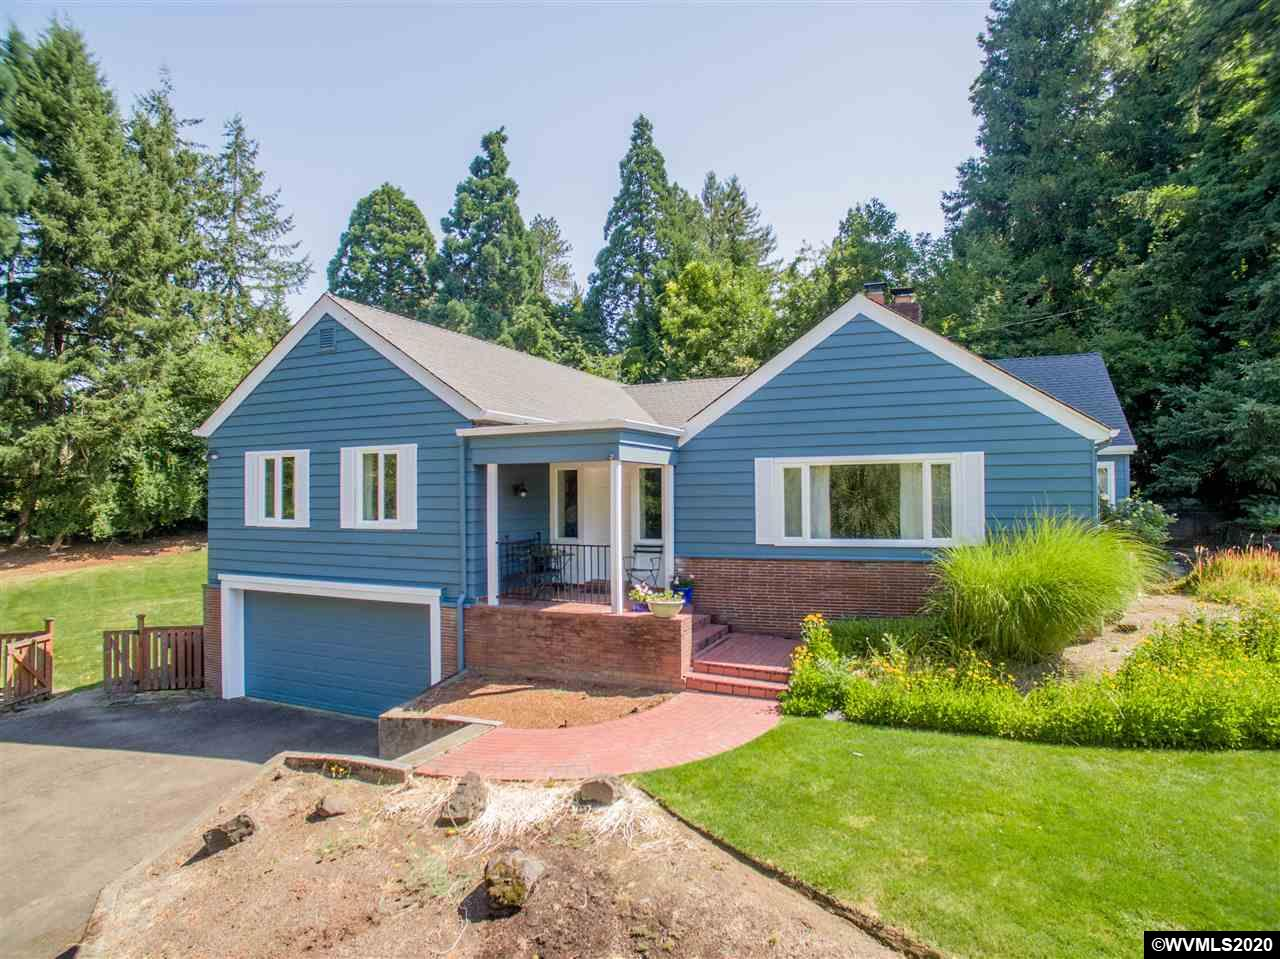 Corvallis gem 3 min to OSU on secluded .83 ac lot. 2nd owner home, maintained & renovated w/integrity of the period. Lrg living spaces, unique original features include custom built-ins, 2 Fireplaces, vintage cocktail bar & pecan HW floors. Also, for you allergy sufferers, this home has hot water radiator heat, no forced air heat here!! Don't miss the access to the upstairs attic space, add on a master suite or just extra strg. Also walk out unfinished bsmt. Must See!